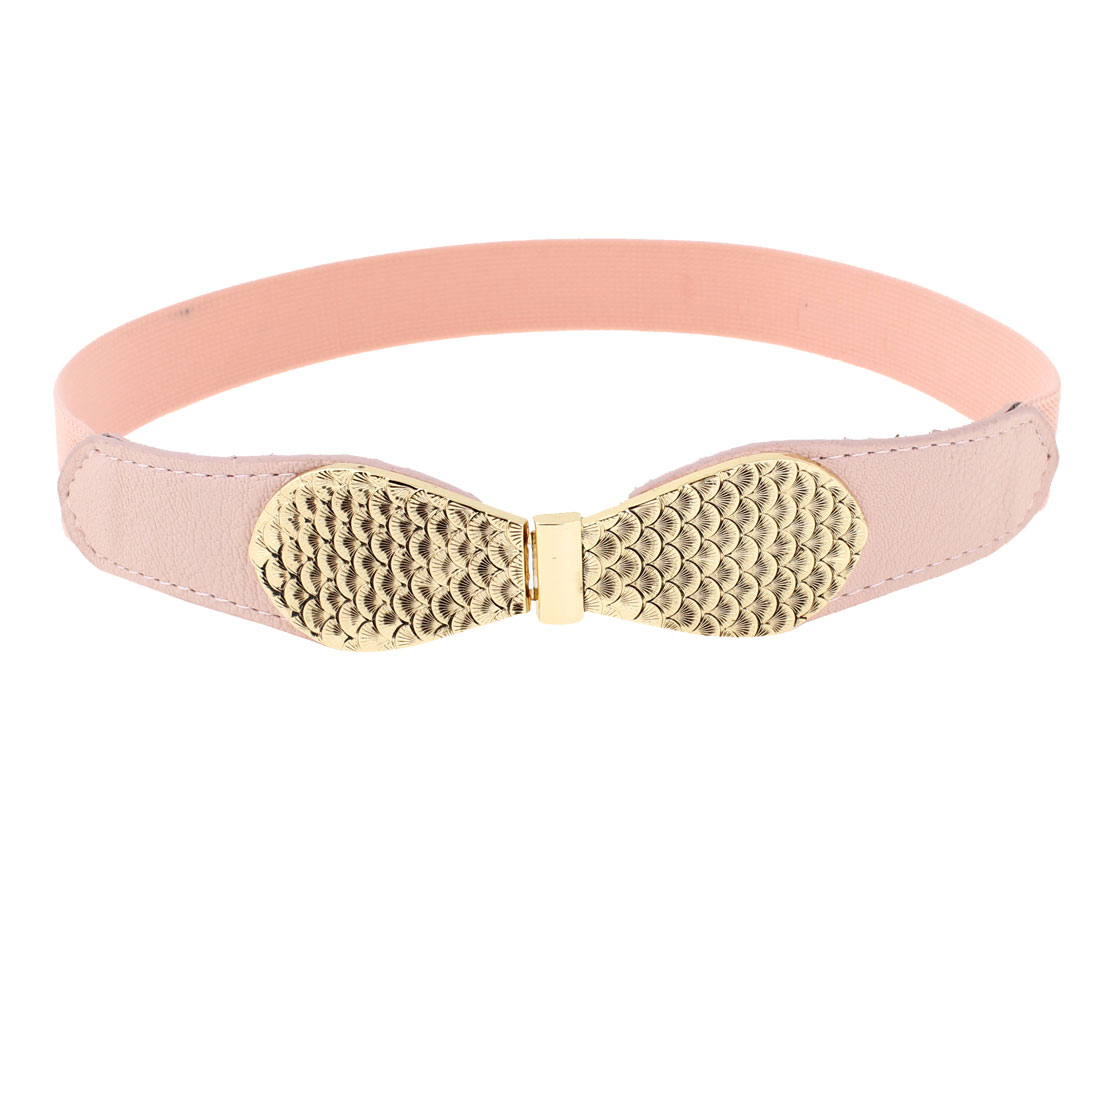 Fish Scale Pattern Metallic Interlock Buckle Skinny Cinch Belt Pink for Women